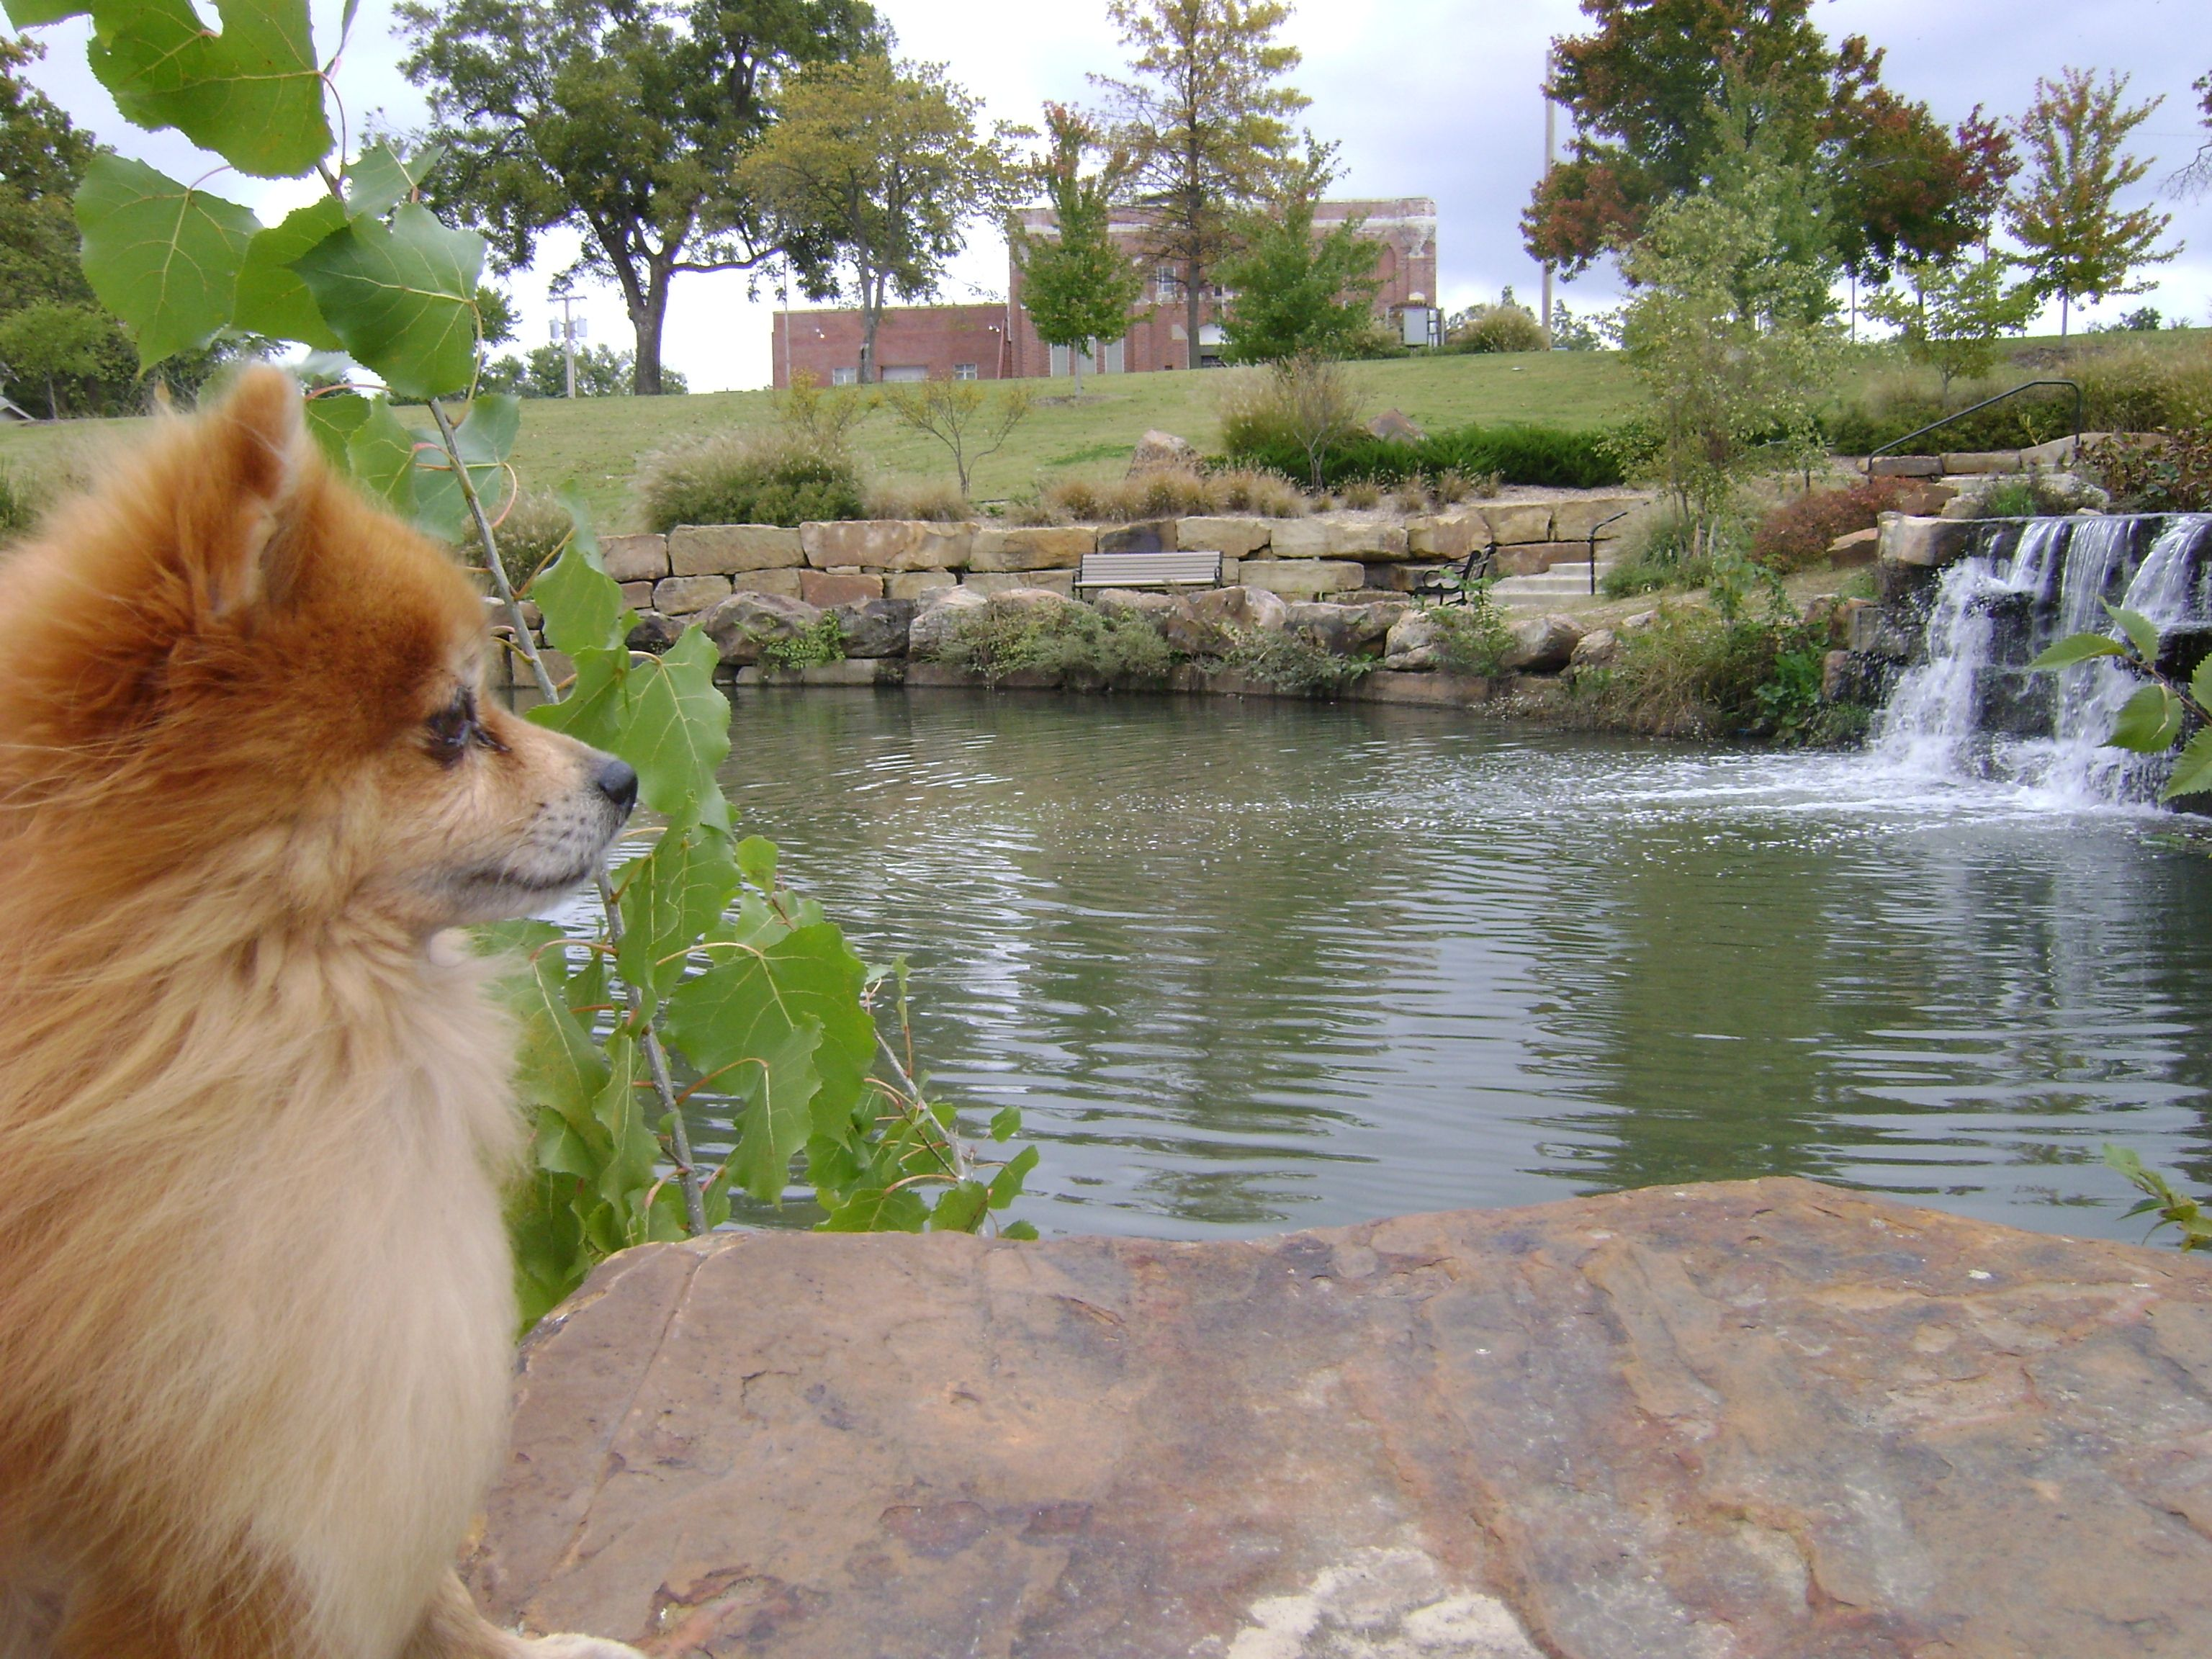 This Pomeranian Is My Running Buddy Cafe Latte Taytay Pomeranian Running Buddies Dog Love